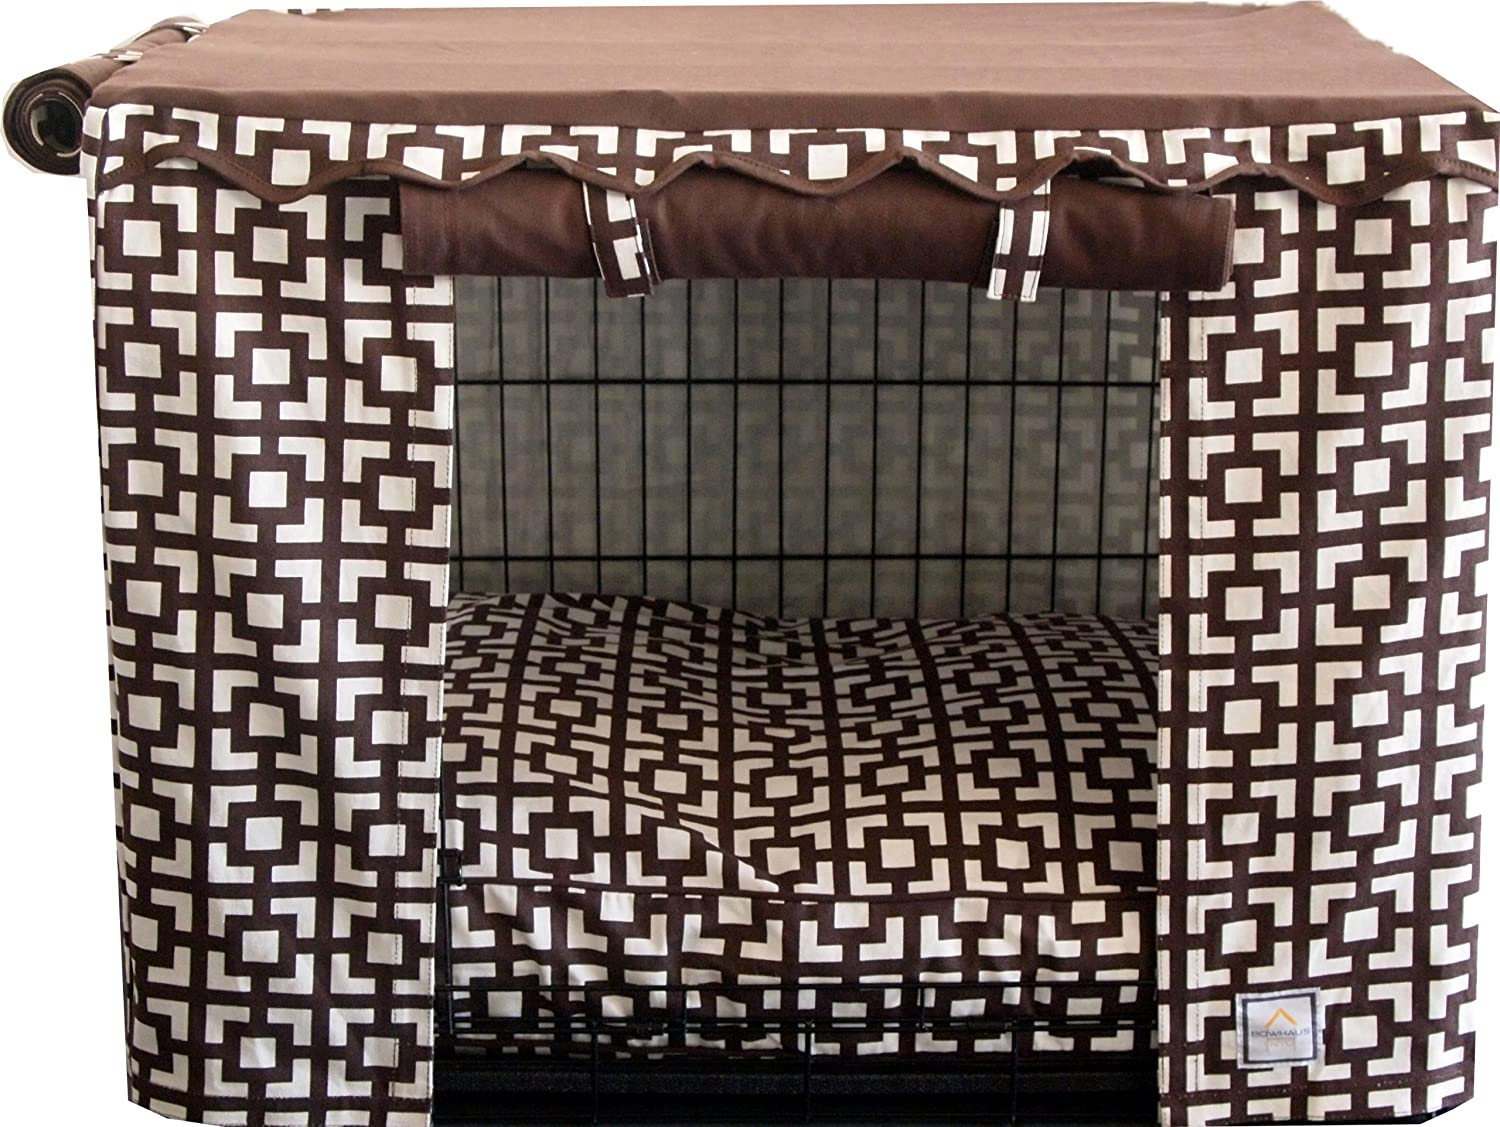 BowhausNYC Lattice Crate Cover Small